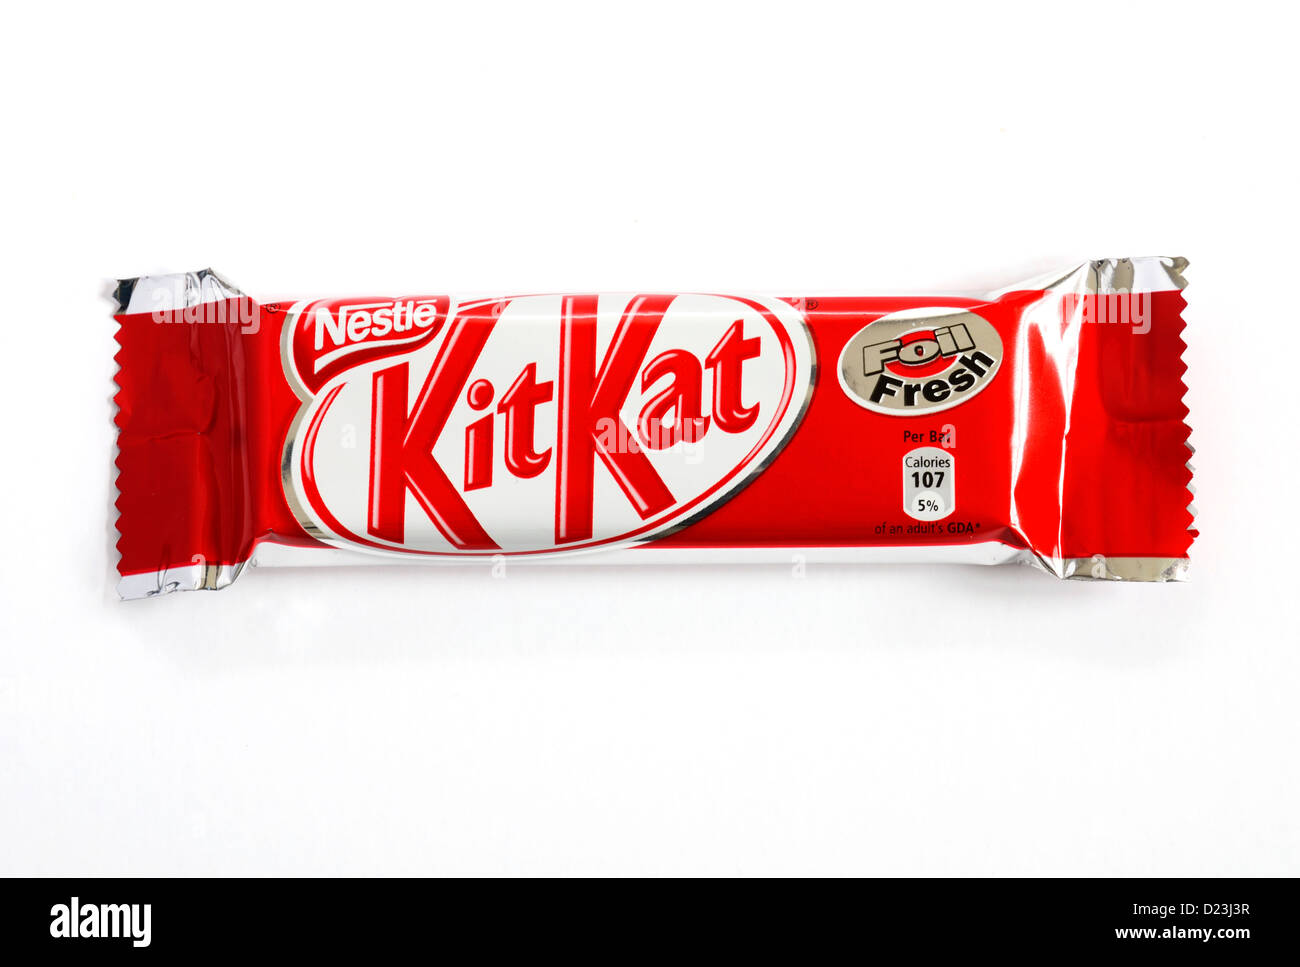 a kitkat choclate snack bar - Stock Image